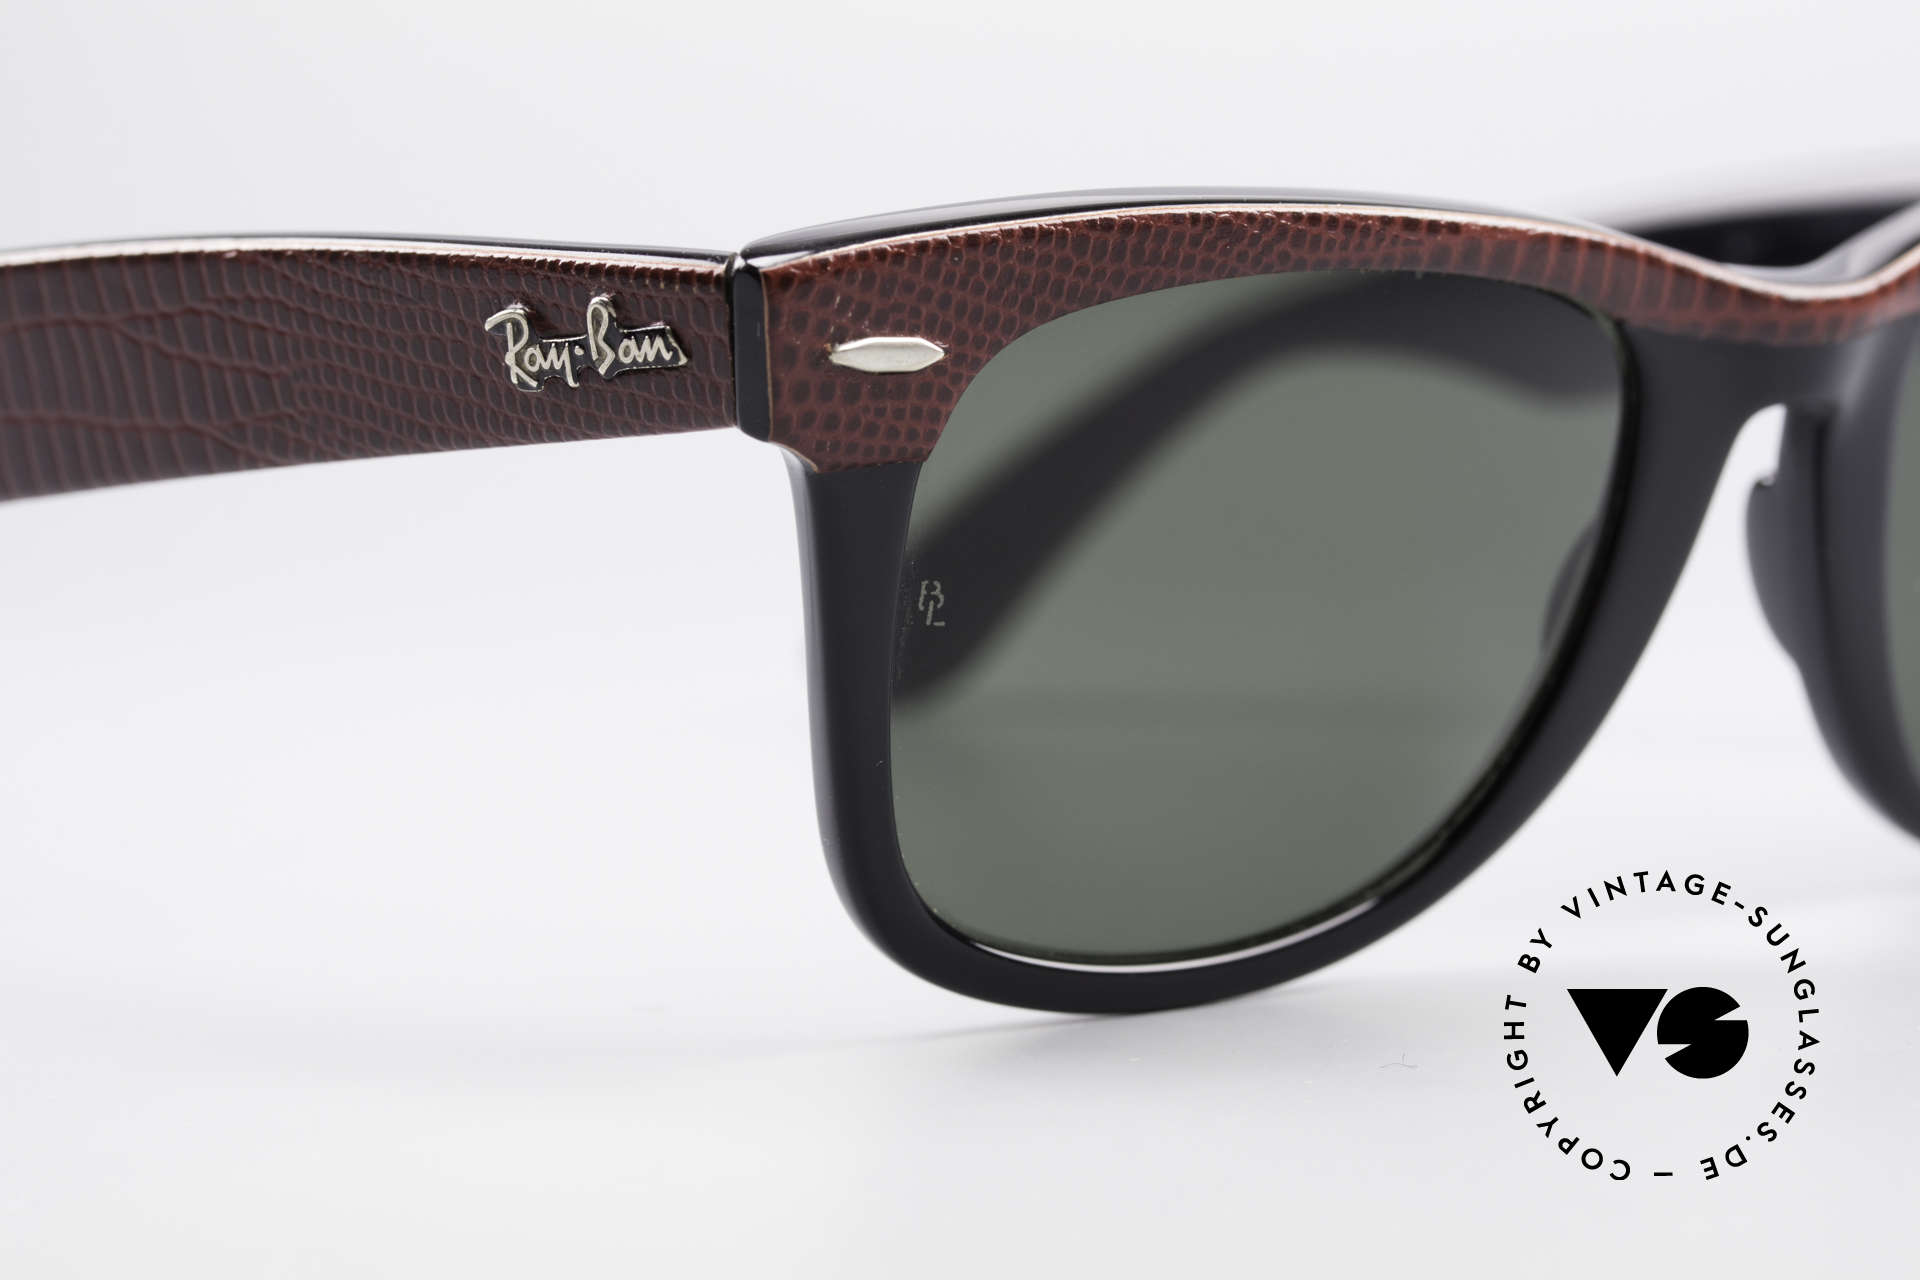 Ray Ban Wayfarer I Limited Leather Sunglasses, unworn rarity, NOS (meanwhile, a collector's item), Made for Men and Women